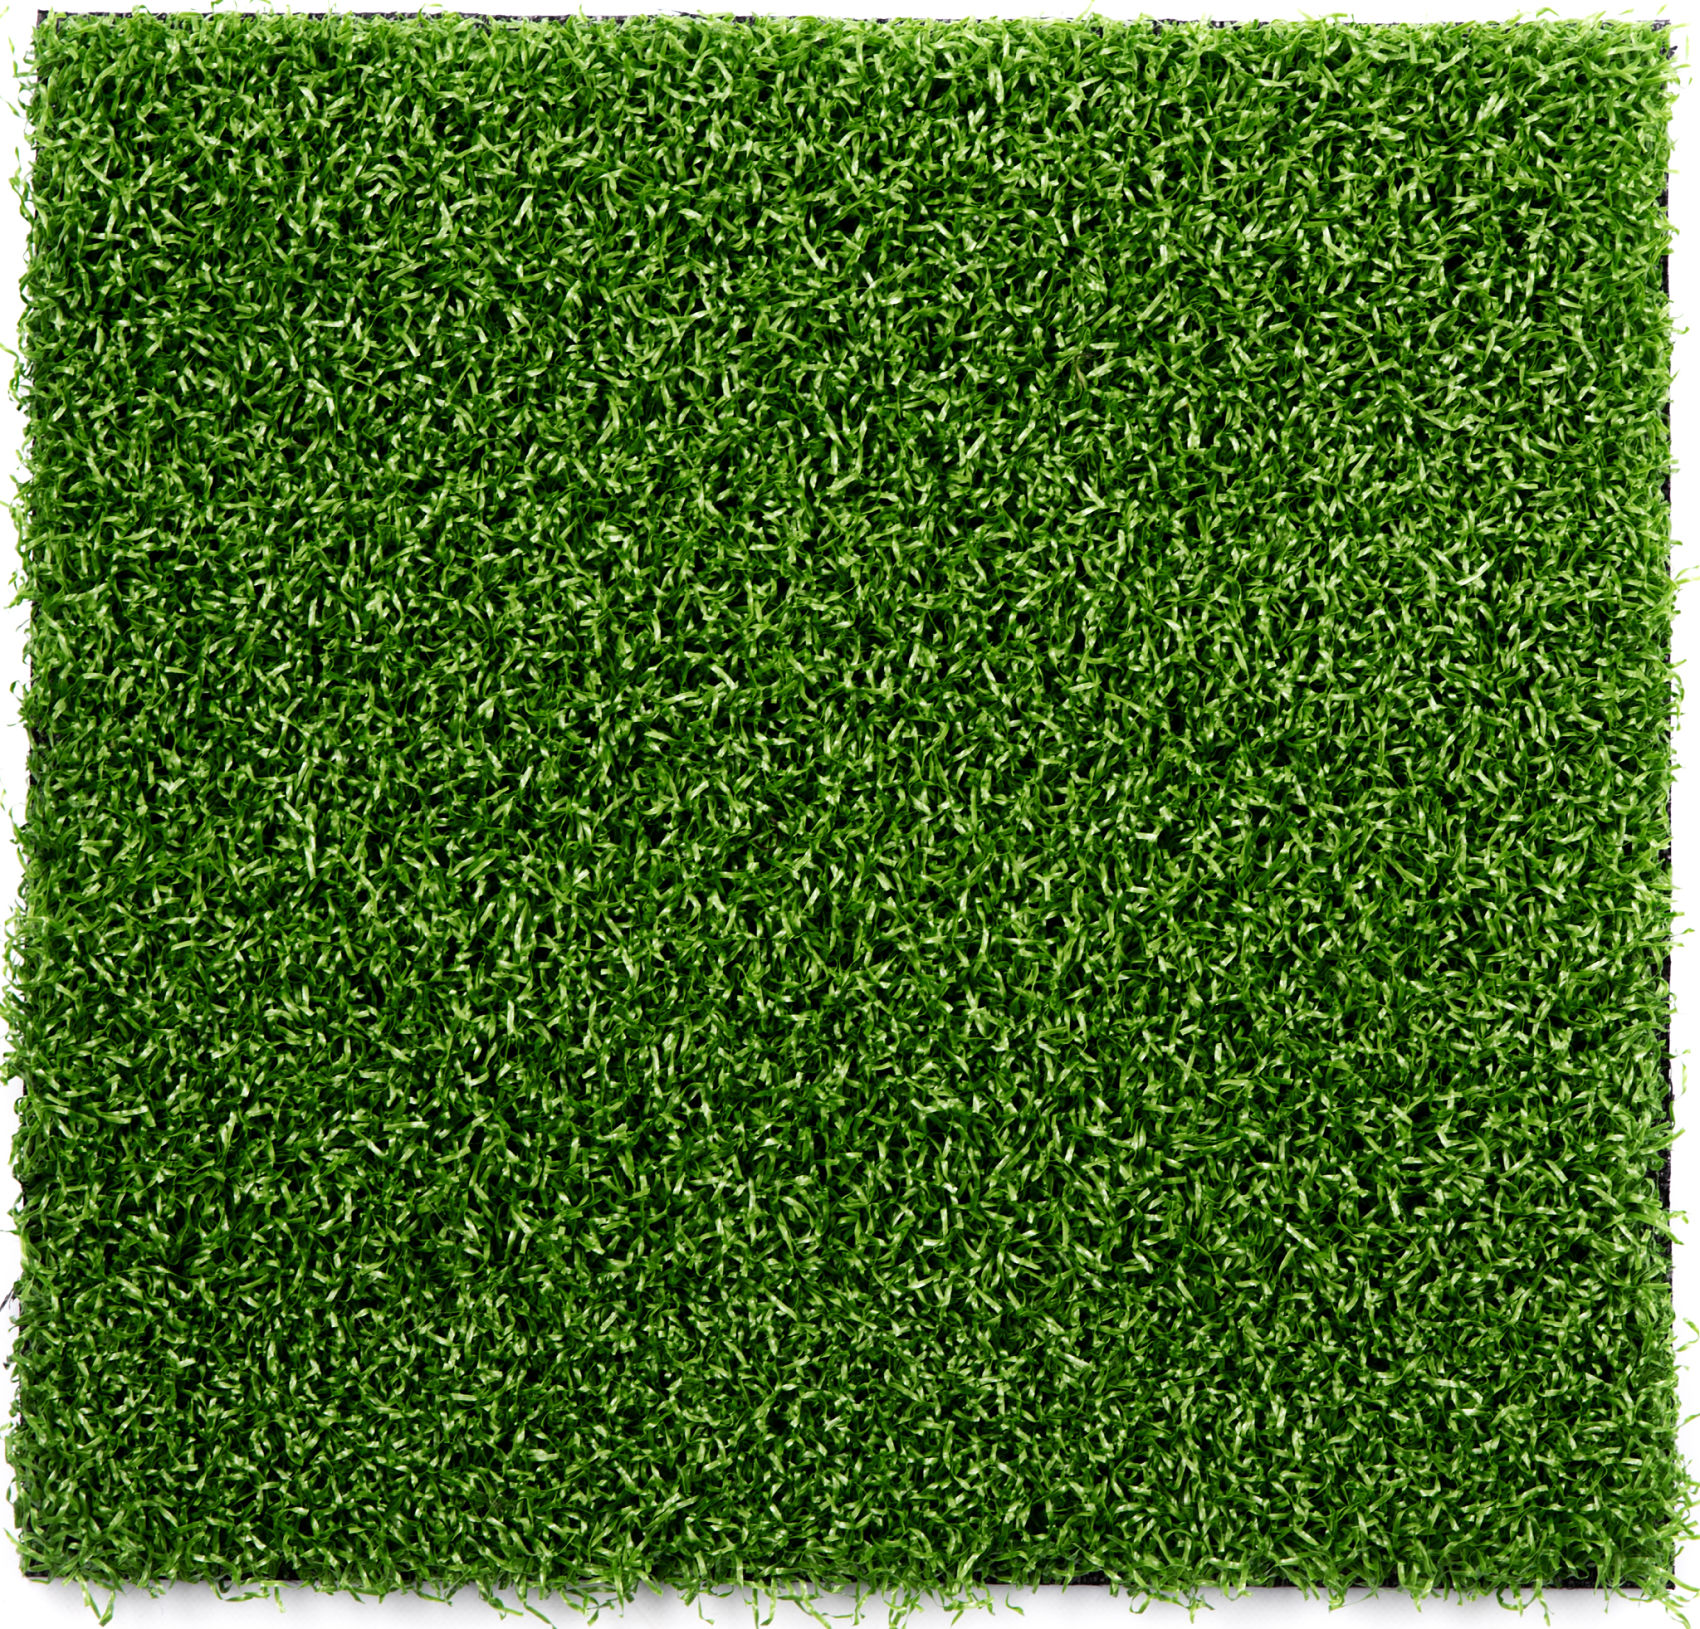 Leroy merlin cesped artificial elegant felpudo astroturf for Cesped natural leroy merlin